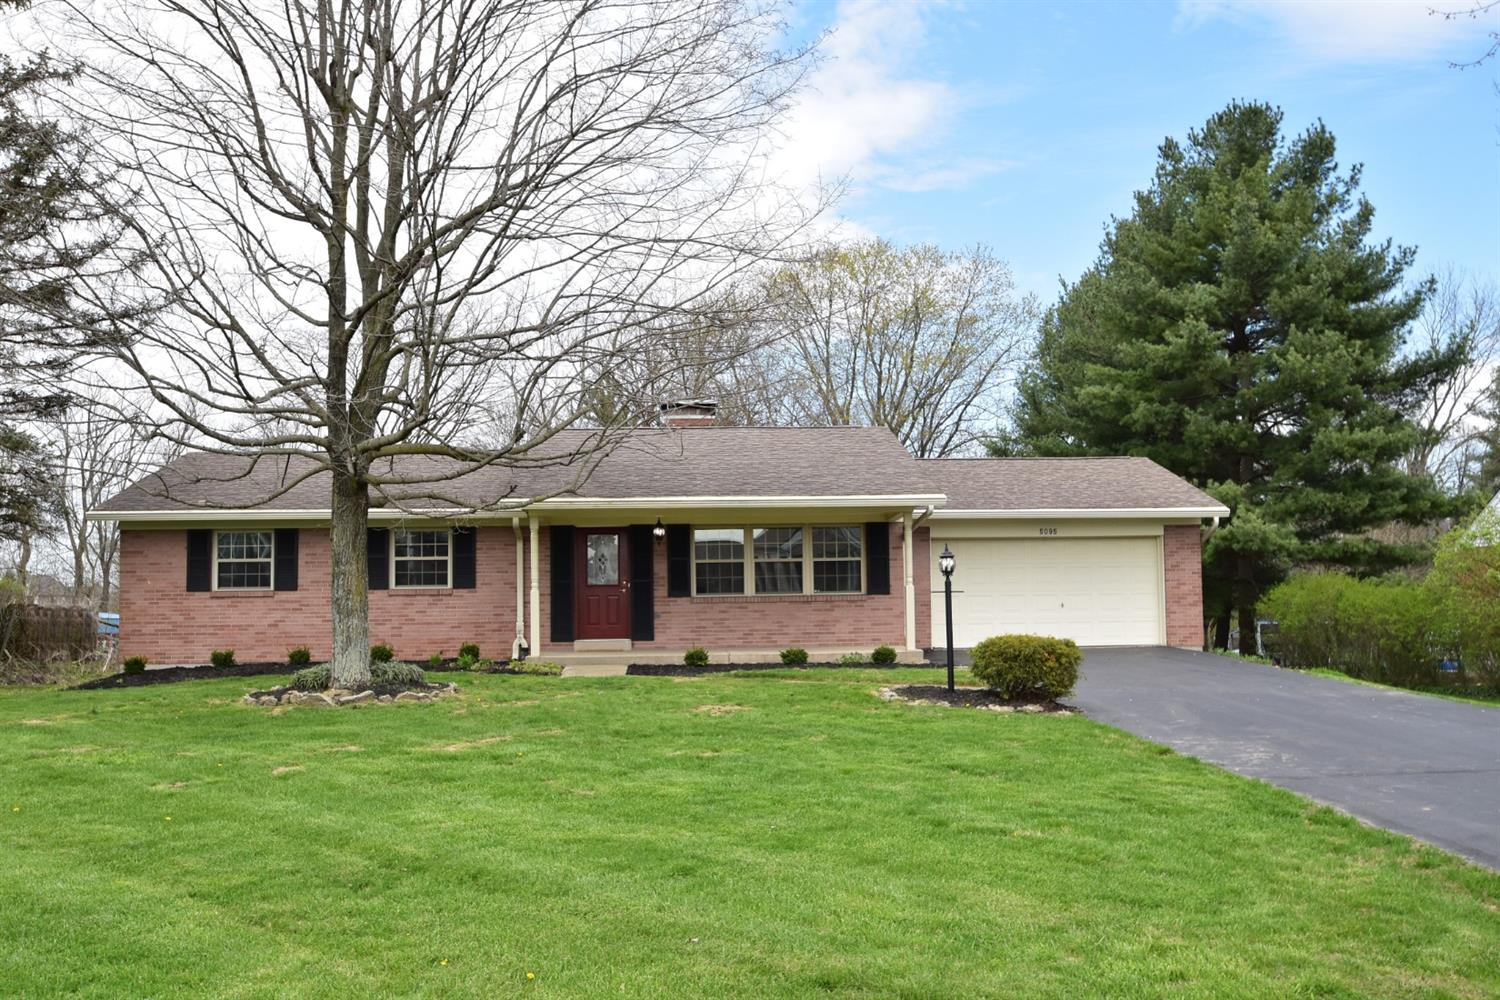 Photo of 5095 Cox Smith Road, Union Twp, OH 45040